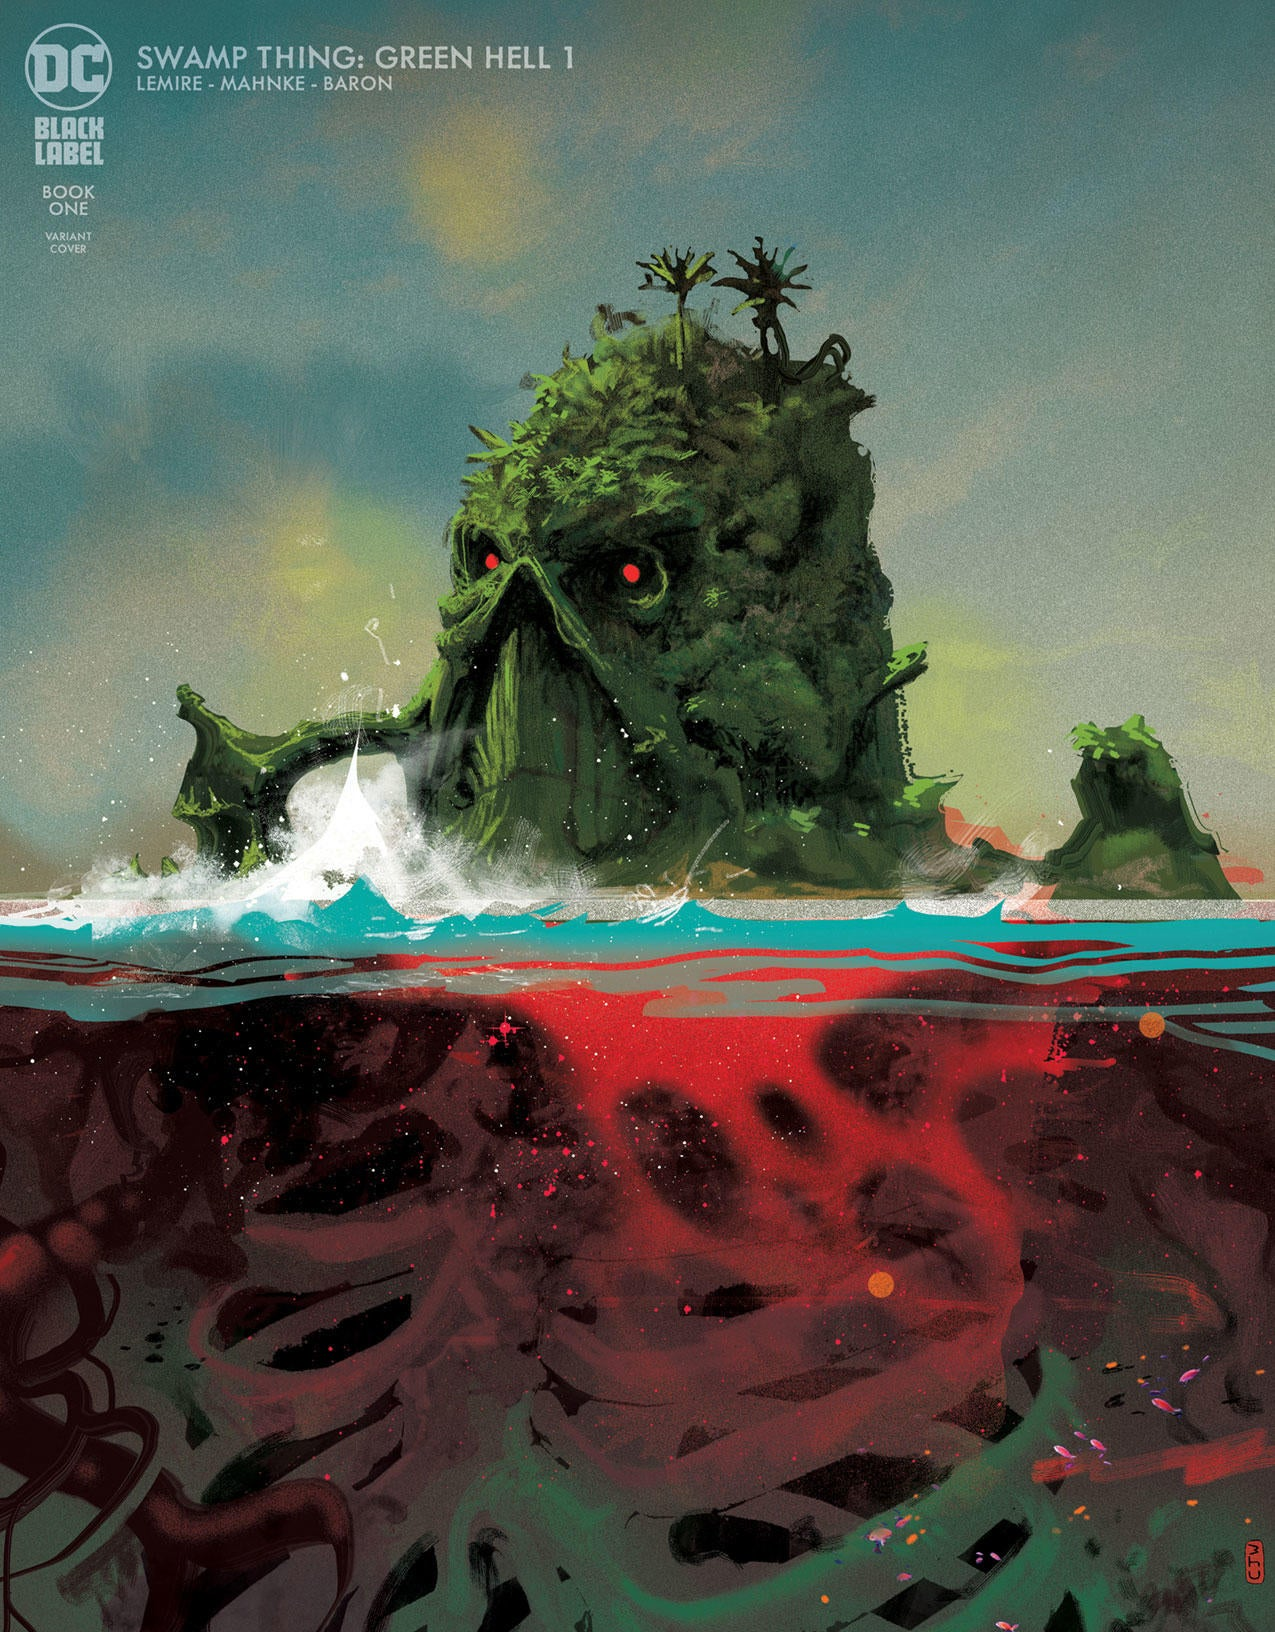 swamp-thing-green-hell-1-variant-cover.jpg